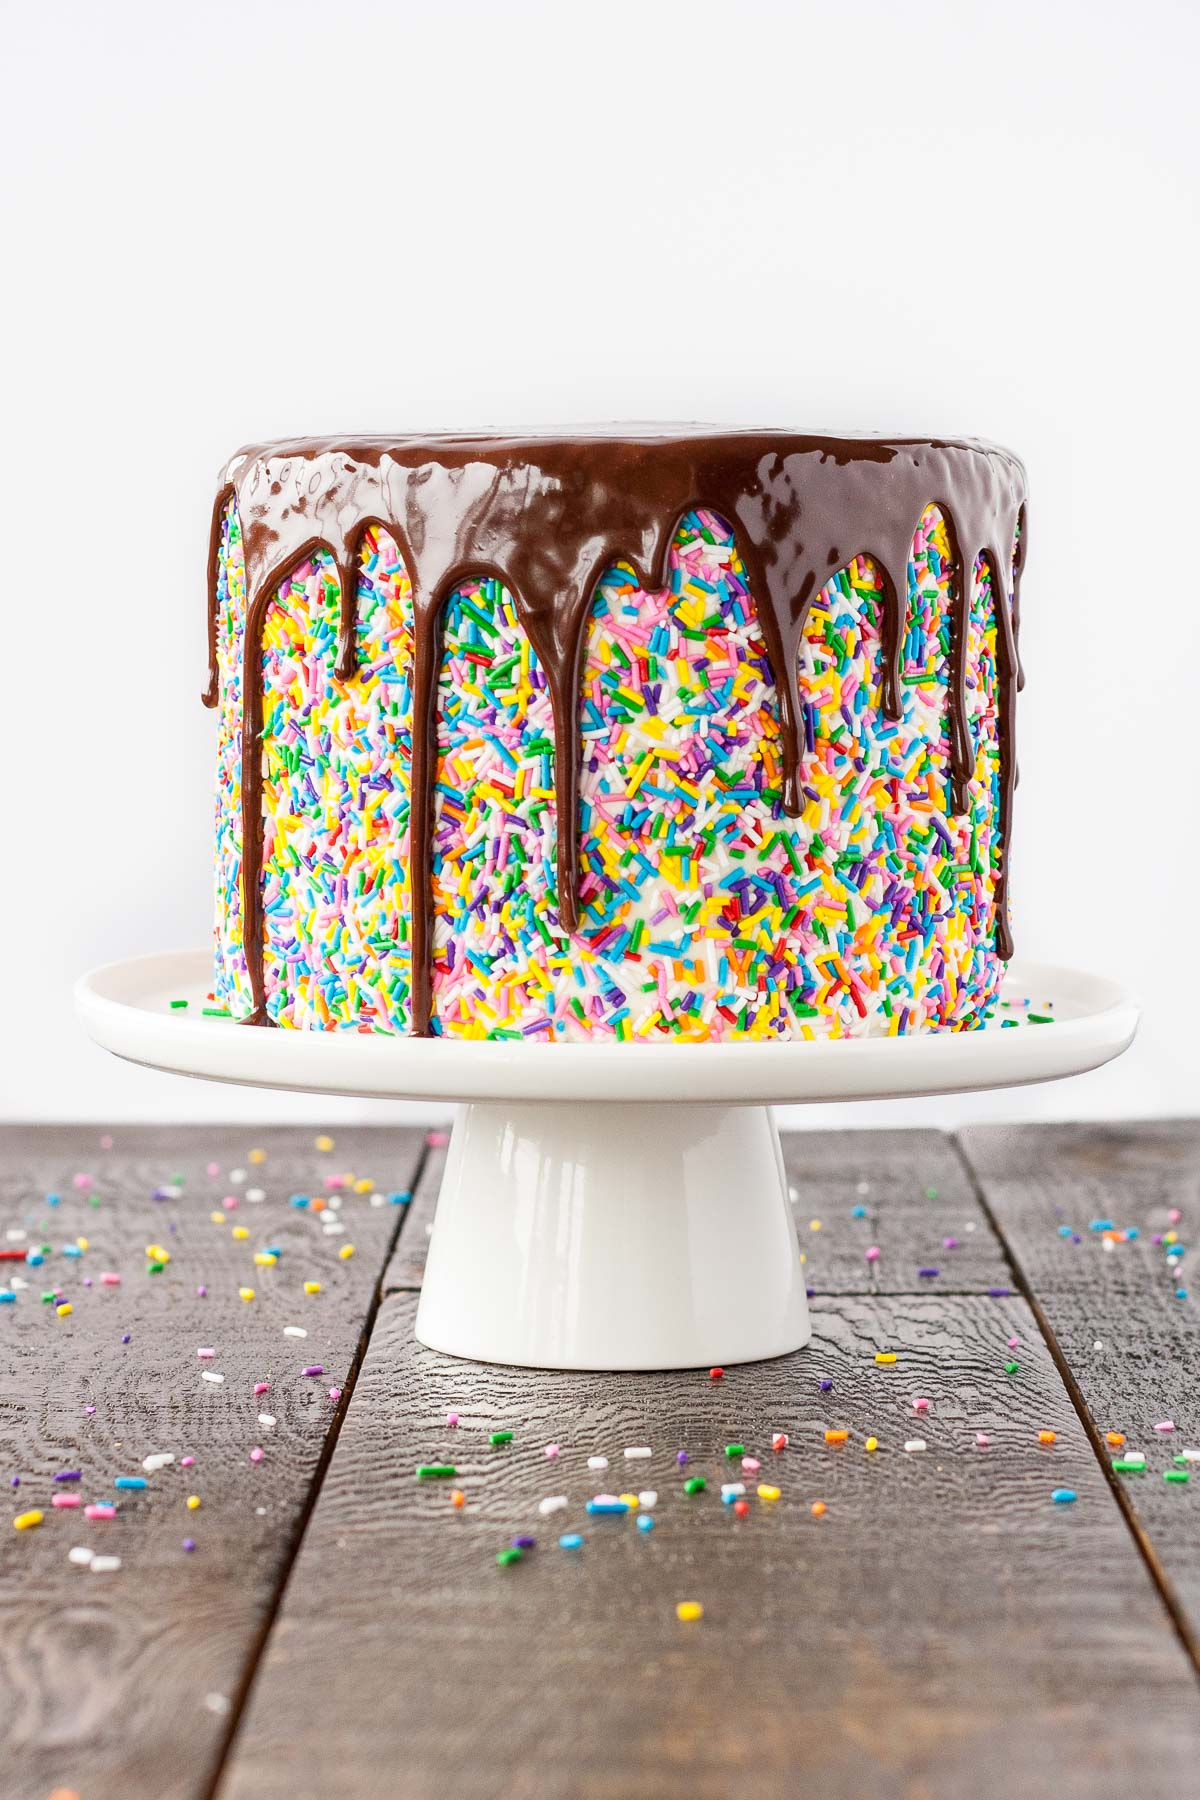 This Sprinkle Studded Funfetti Cake Is Paired With A Fluffy Cream Cheese Frosting And Topped With A Rich Dark Chocolate Ganache